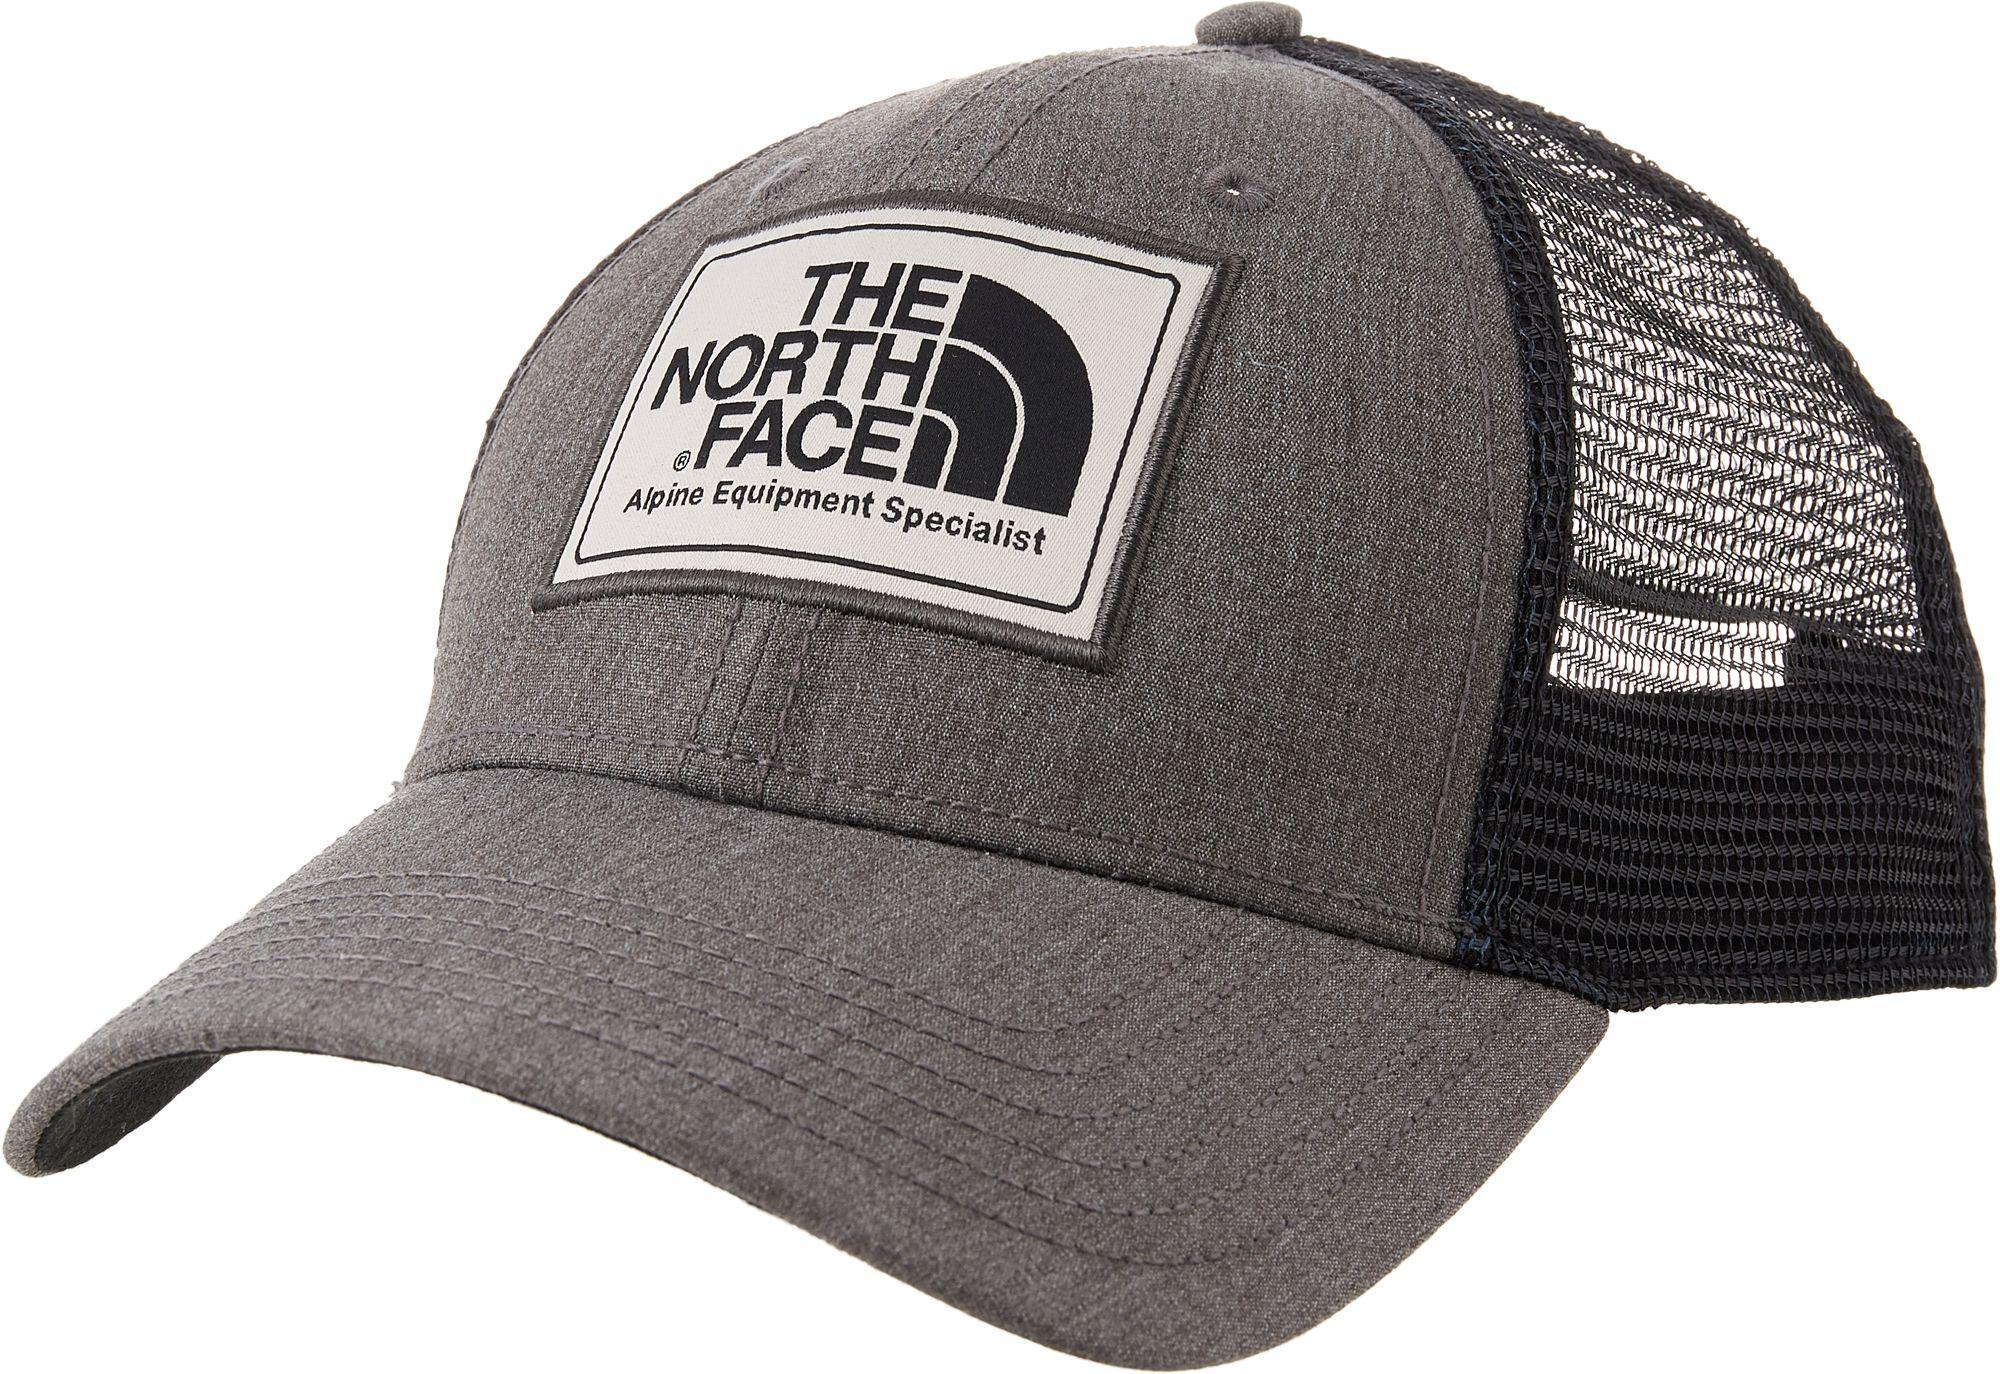 03fdbc5d4ba9a2 The North Face Mudder Trucker Hat in Black for Men - Lyst